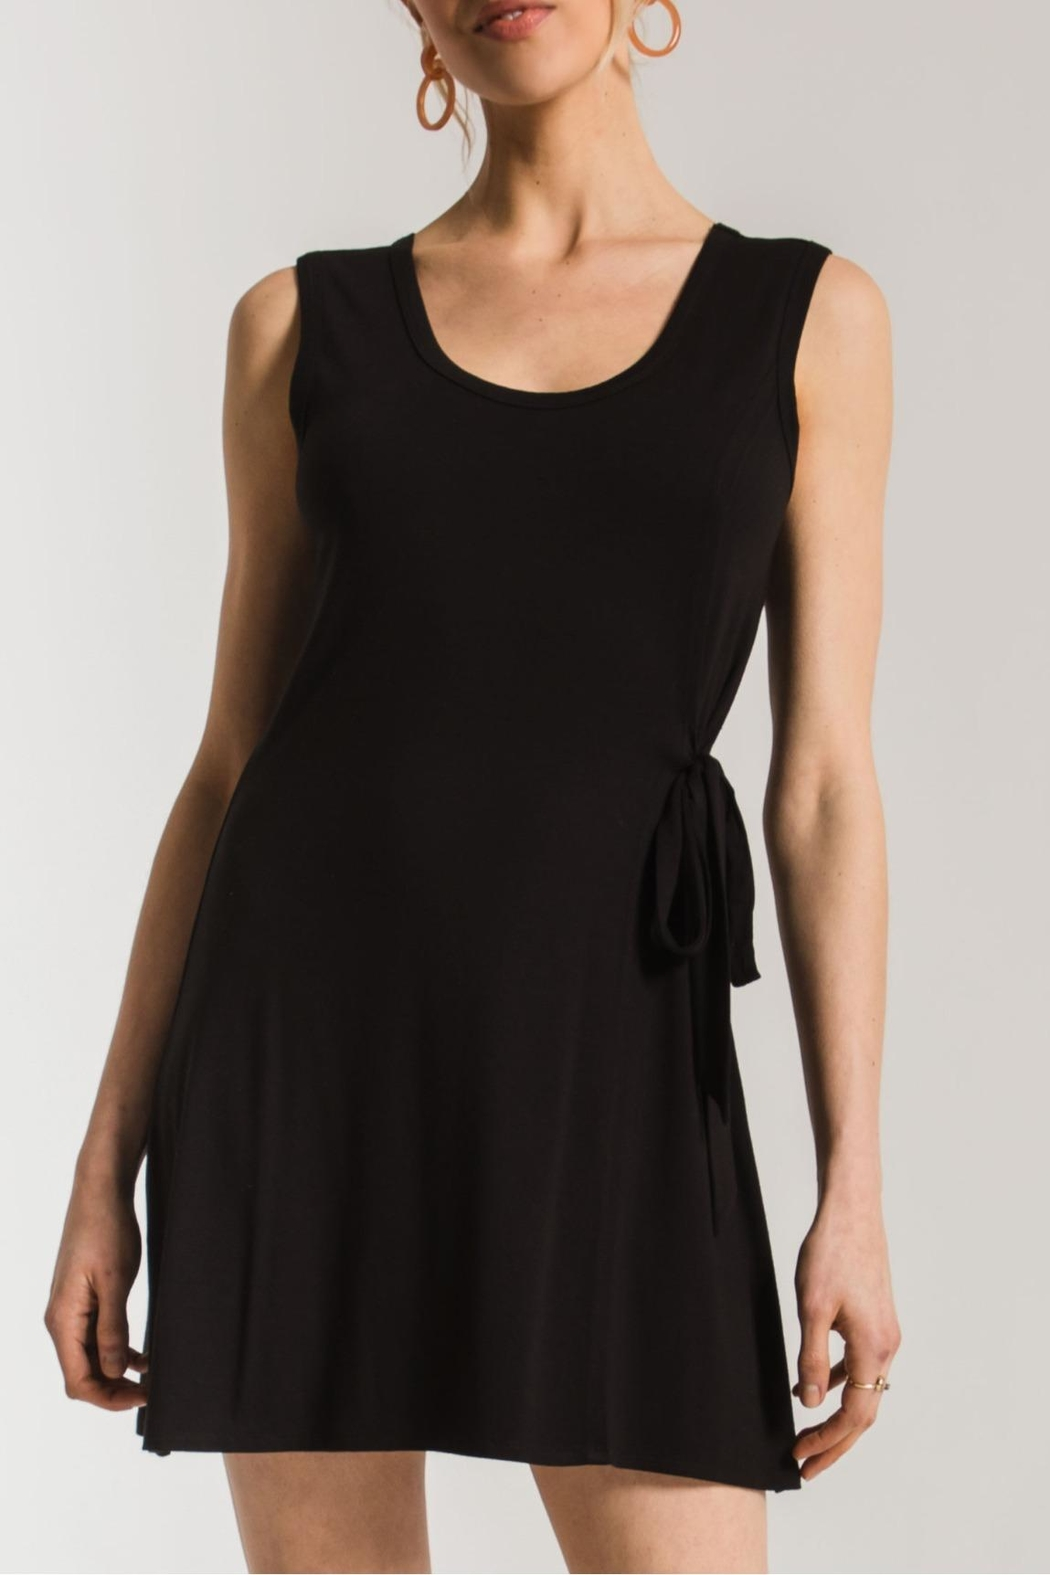 z supply The Side Tie Dress - Main Image